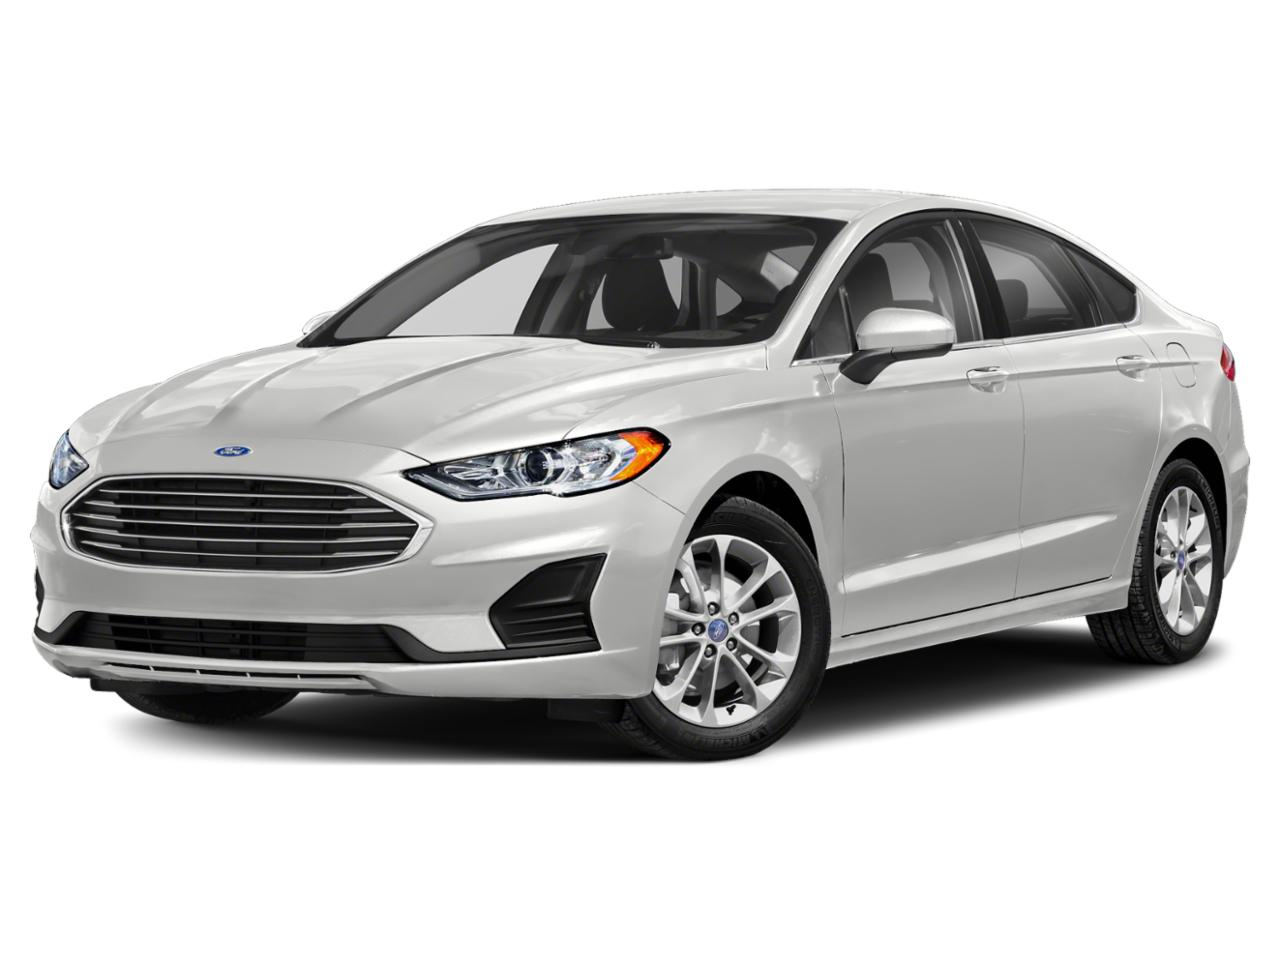 2020 Ford Fusion Vehicle Photo in Quakertown, PA 18951-1403